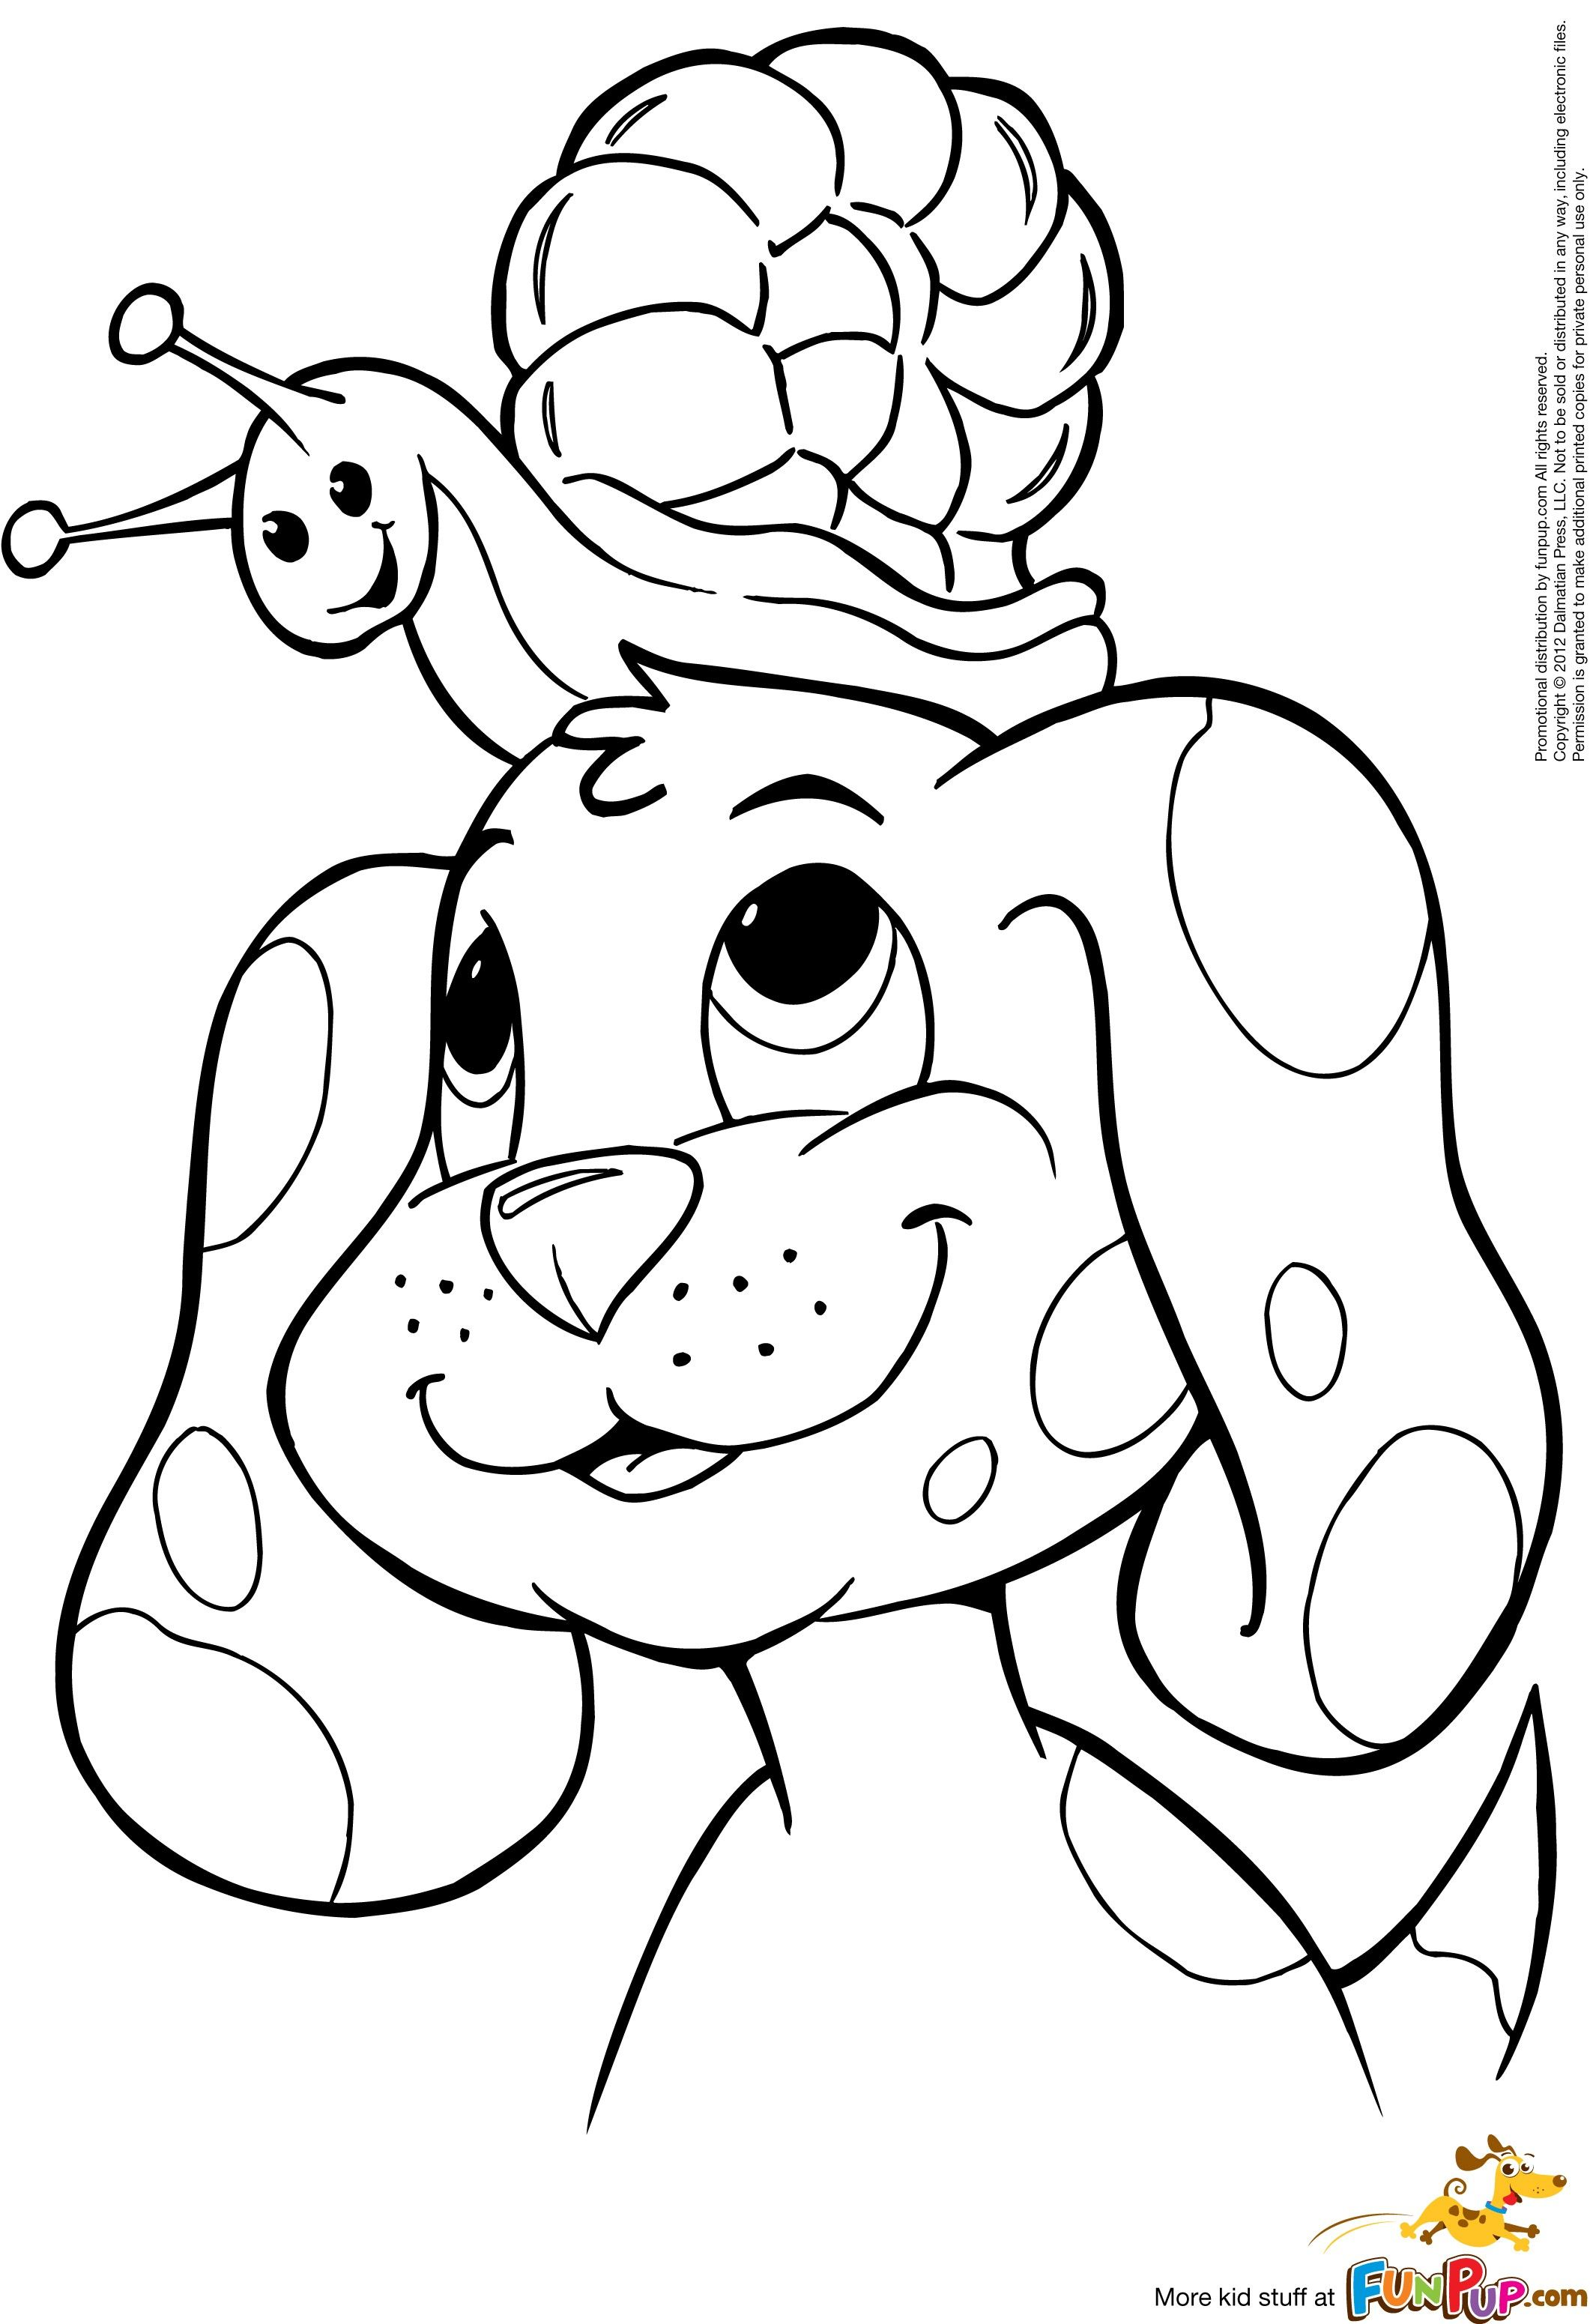 Puppy 1 0 colouring pages | Clip Art Miscellaneous | Pinterest ...